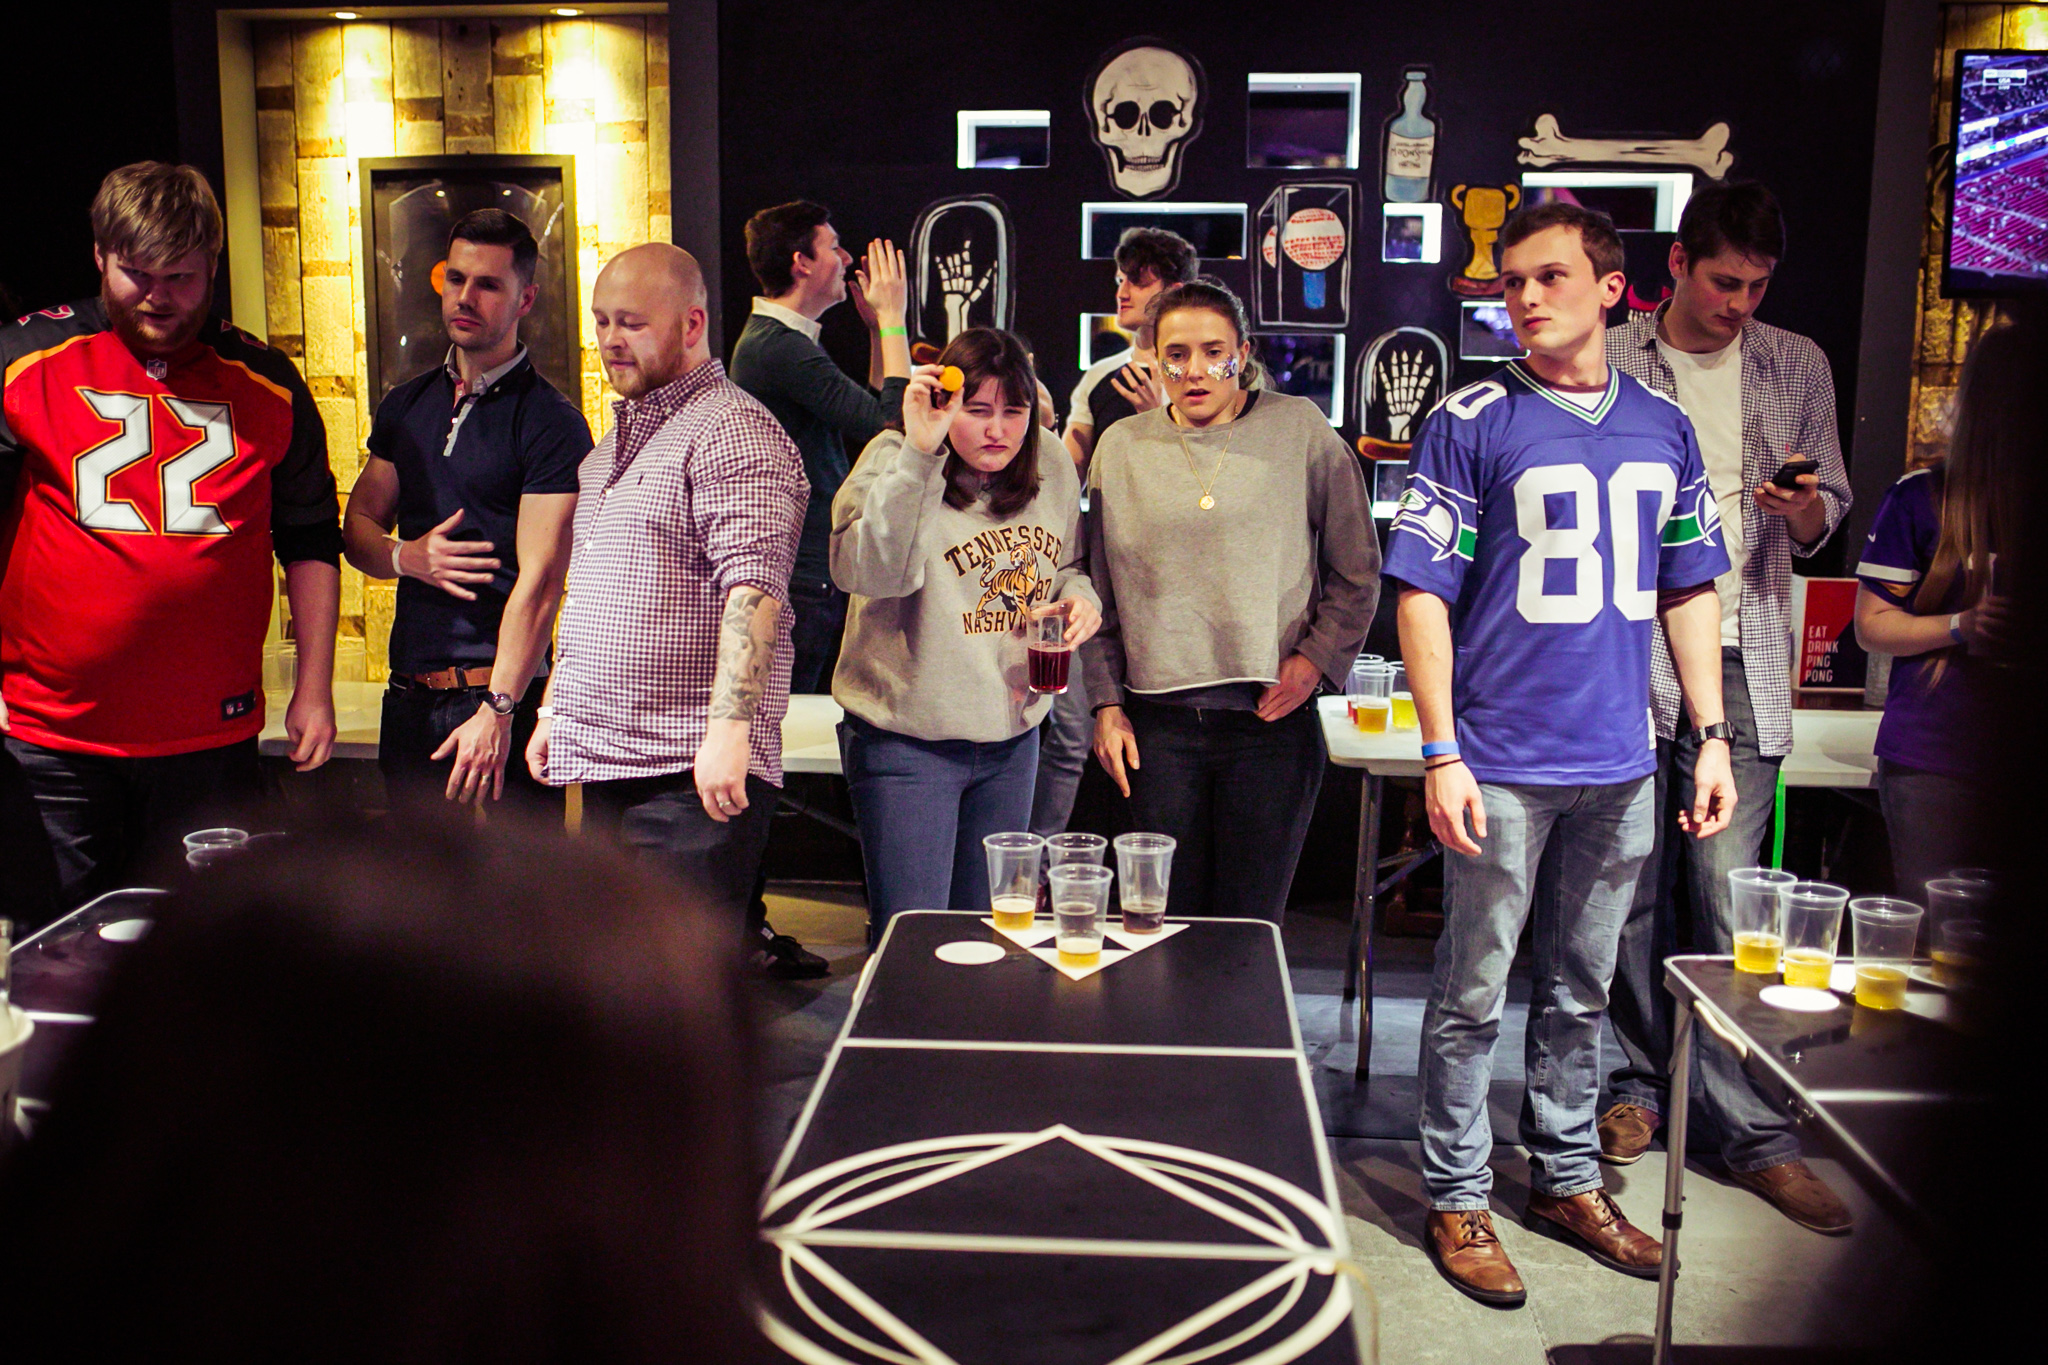 BREWDOG PRESENTS: SUPER BOWL SUNDAY AT THE BAT & BALL